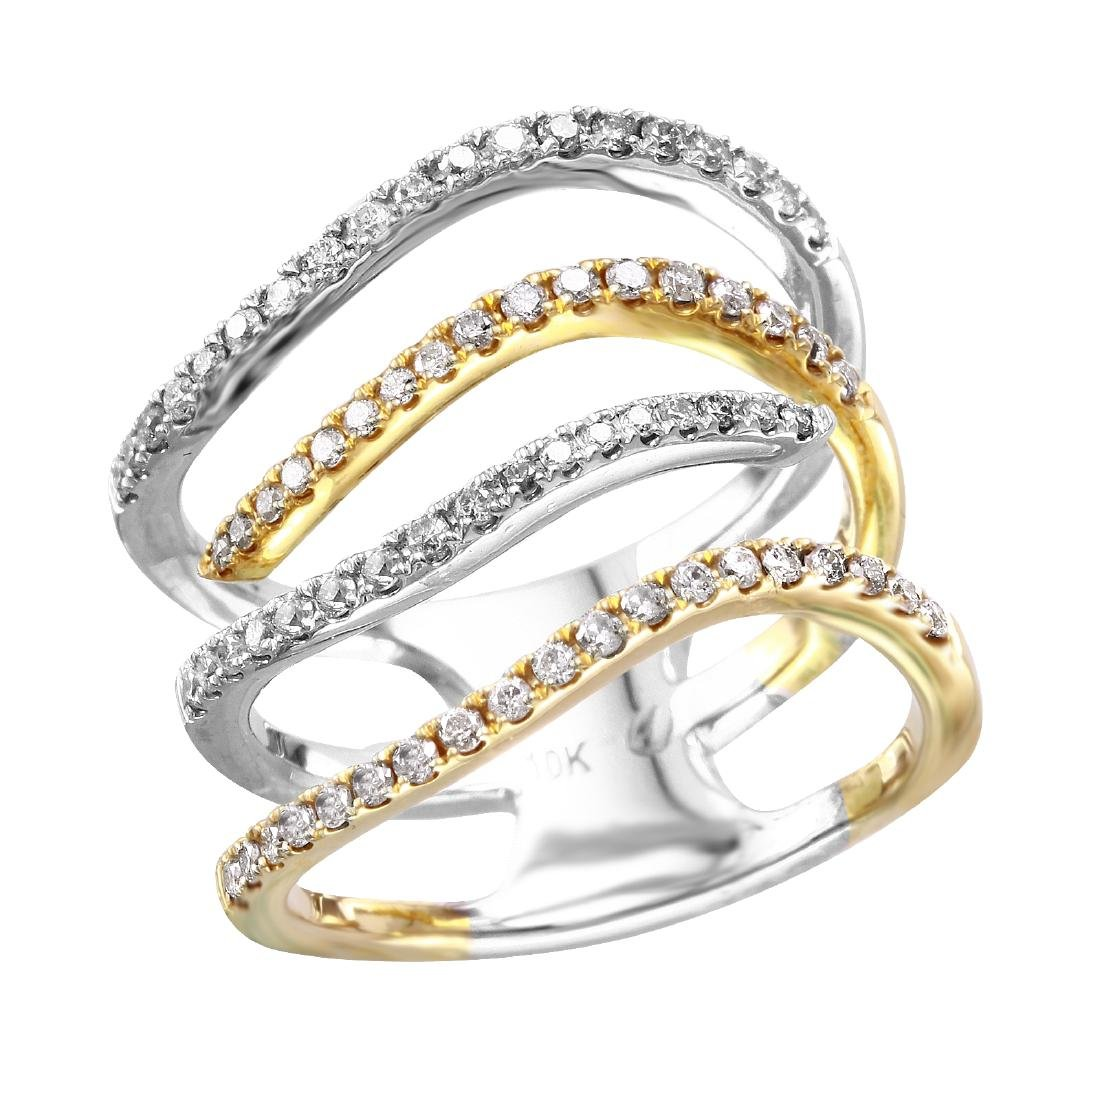 10KT Two Tone Gold Diamond Ring